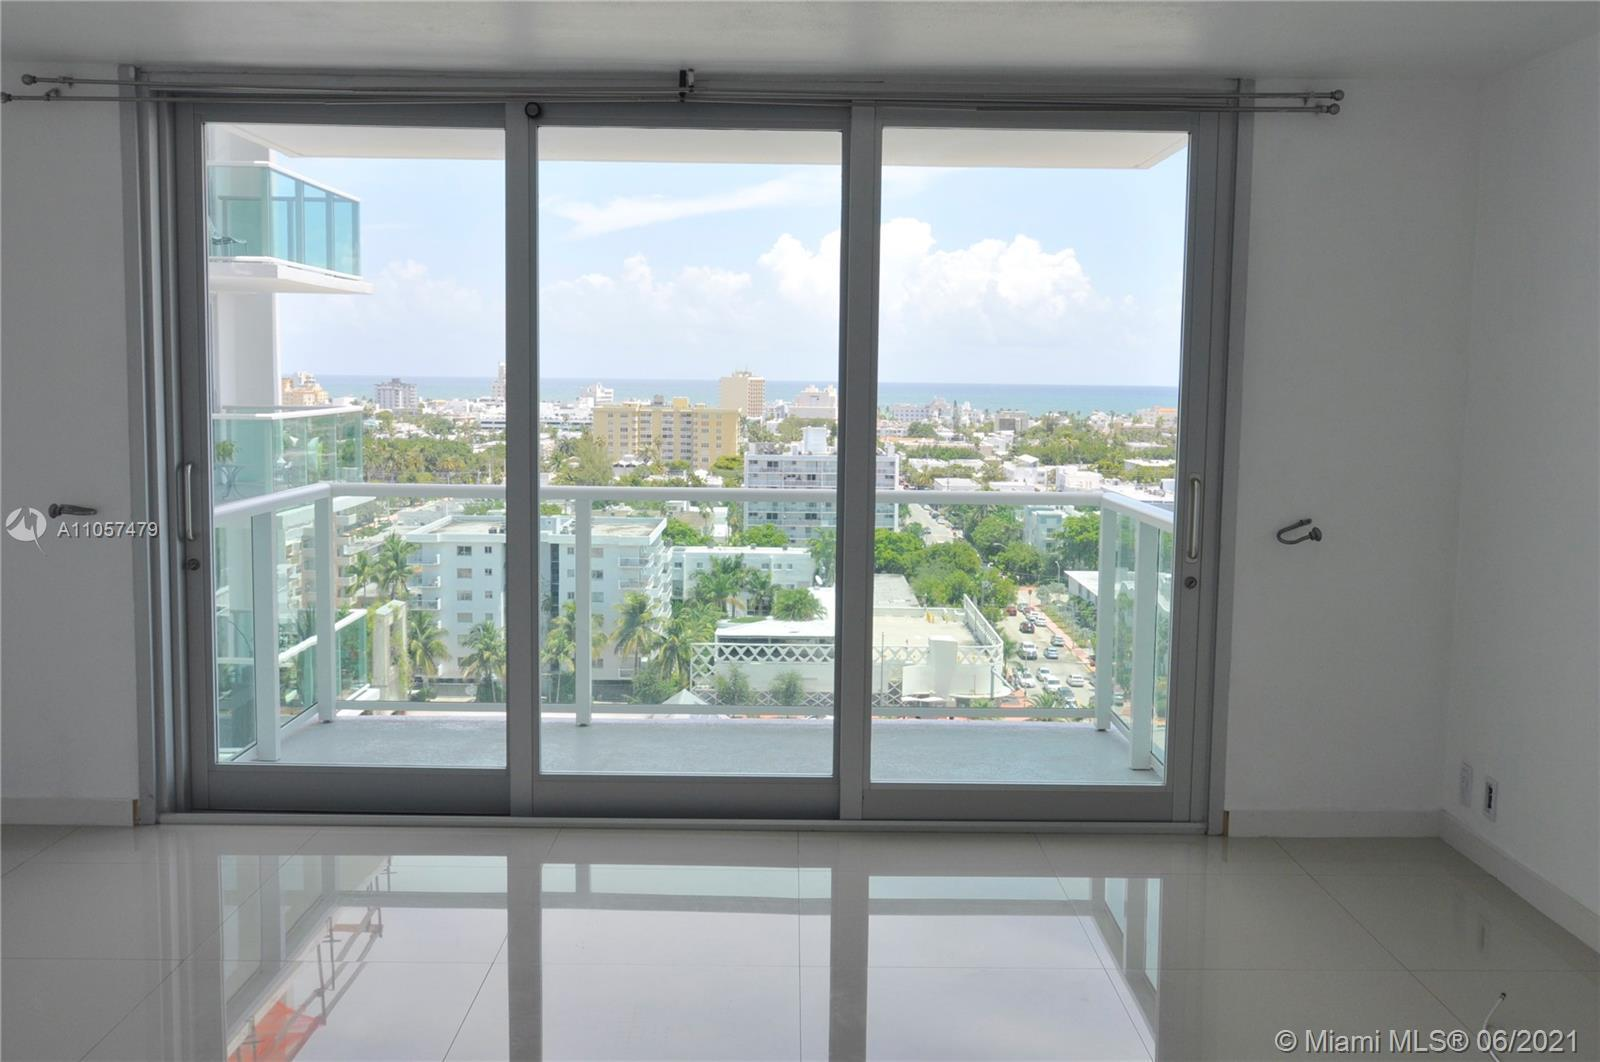 Large Studio with Balcony and a Stunning views of South Beach and the Beach. The unit offers large p